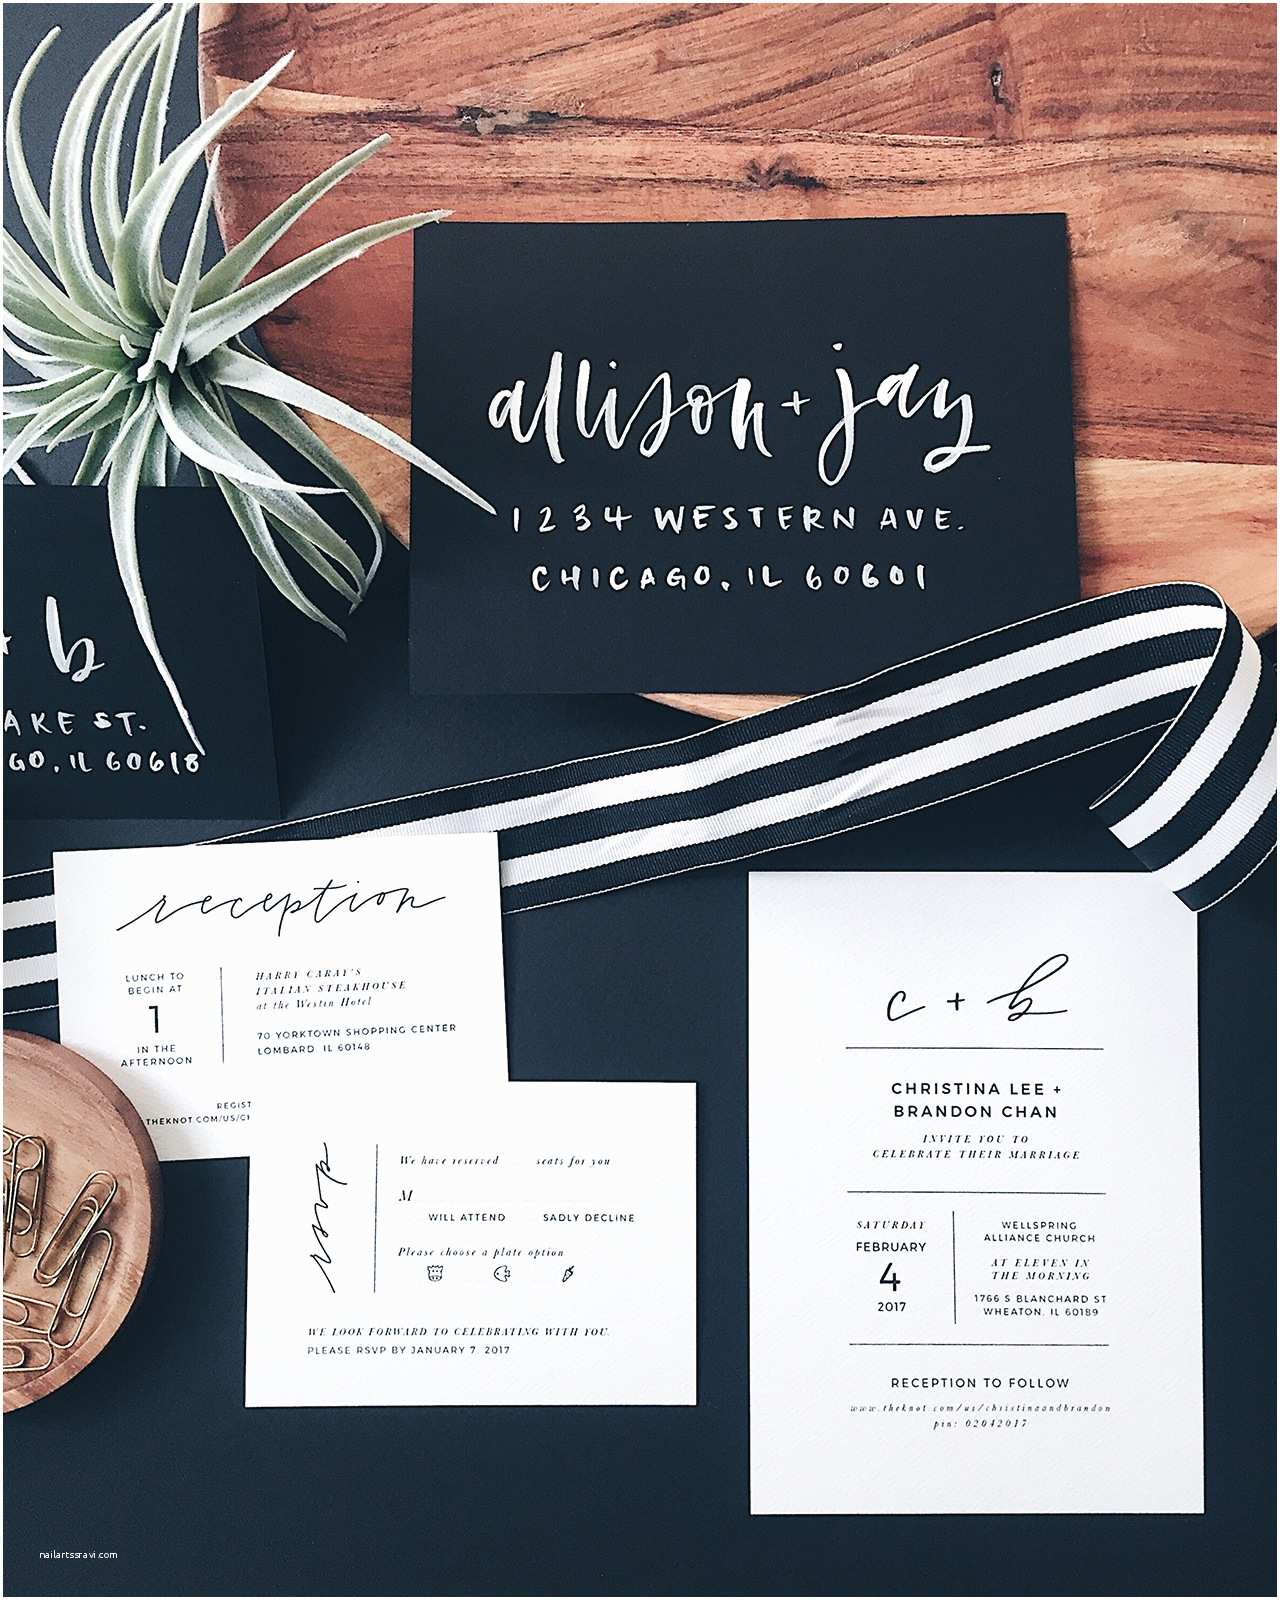 Sheer Paper Wedding Invitations Minimalist Black and White Hand Lettered Wedding